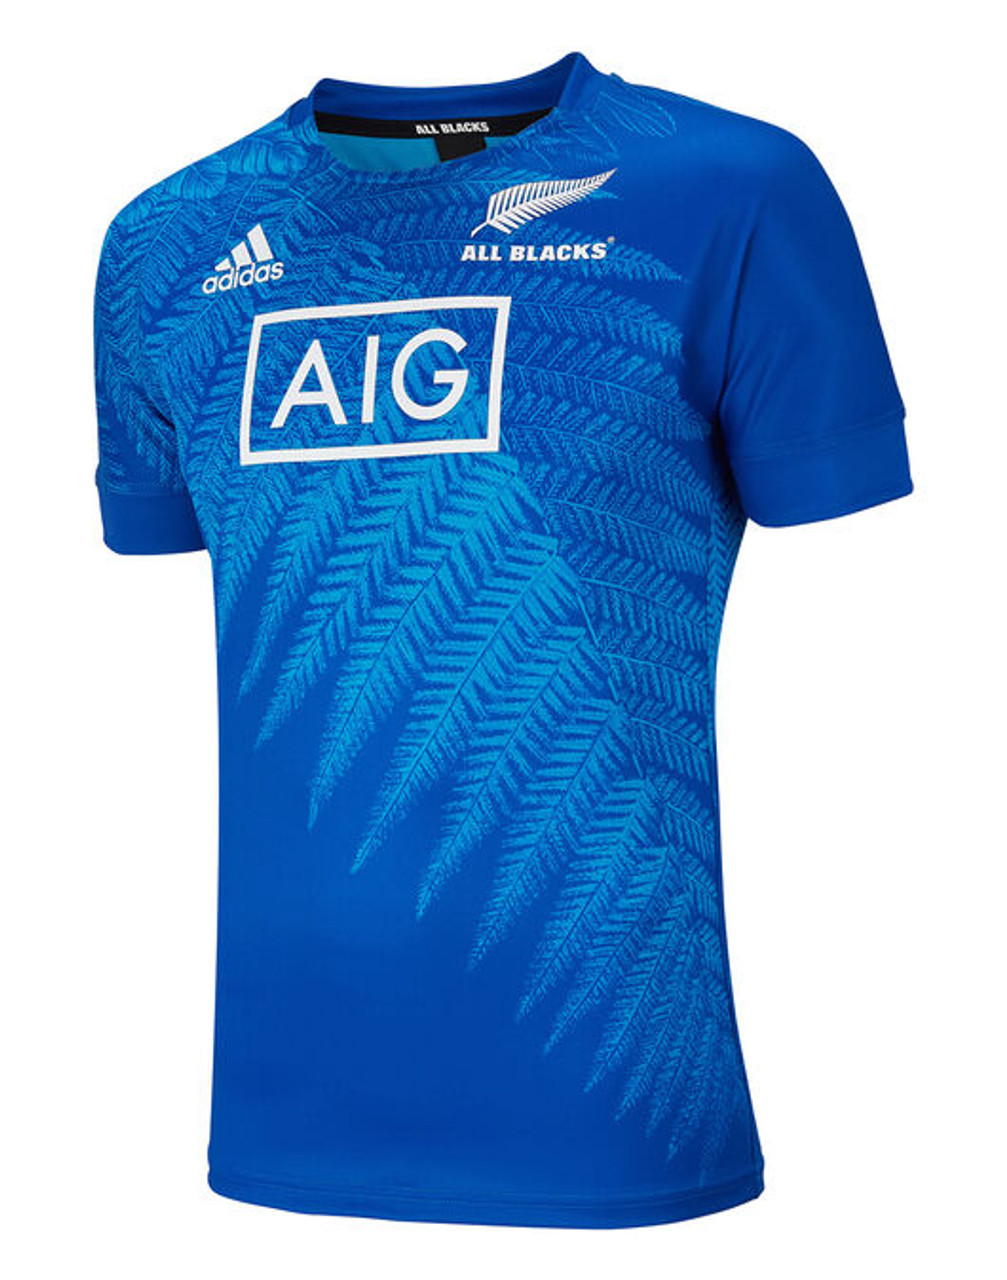 check out f63ca d91e5 Adidas New Zealand All Blacks Rugby World Cup Japan Training Jersey - Blue